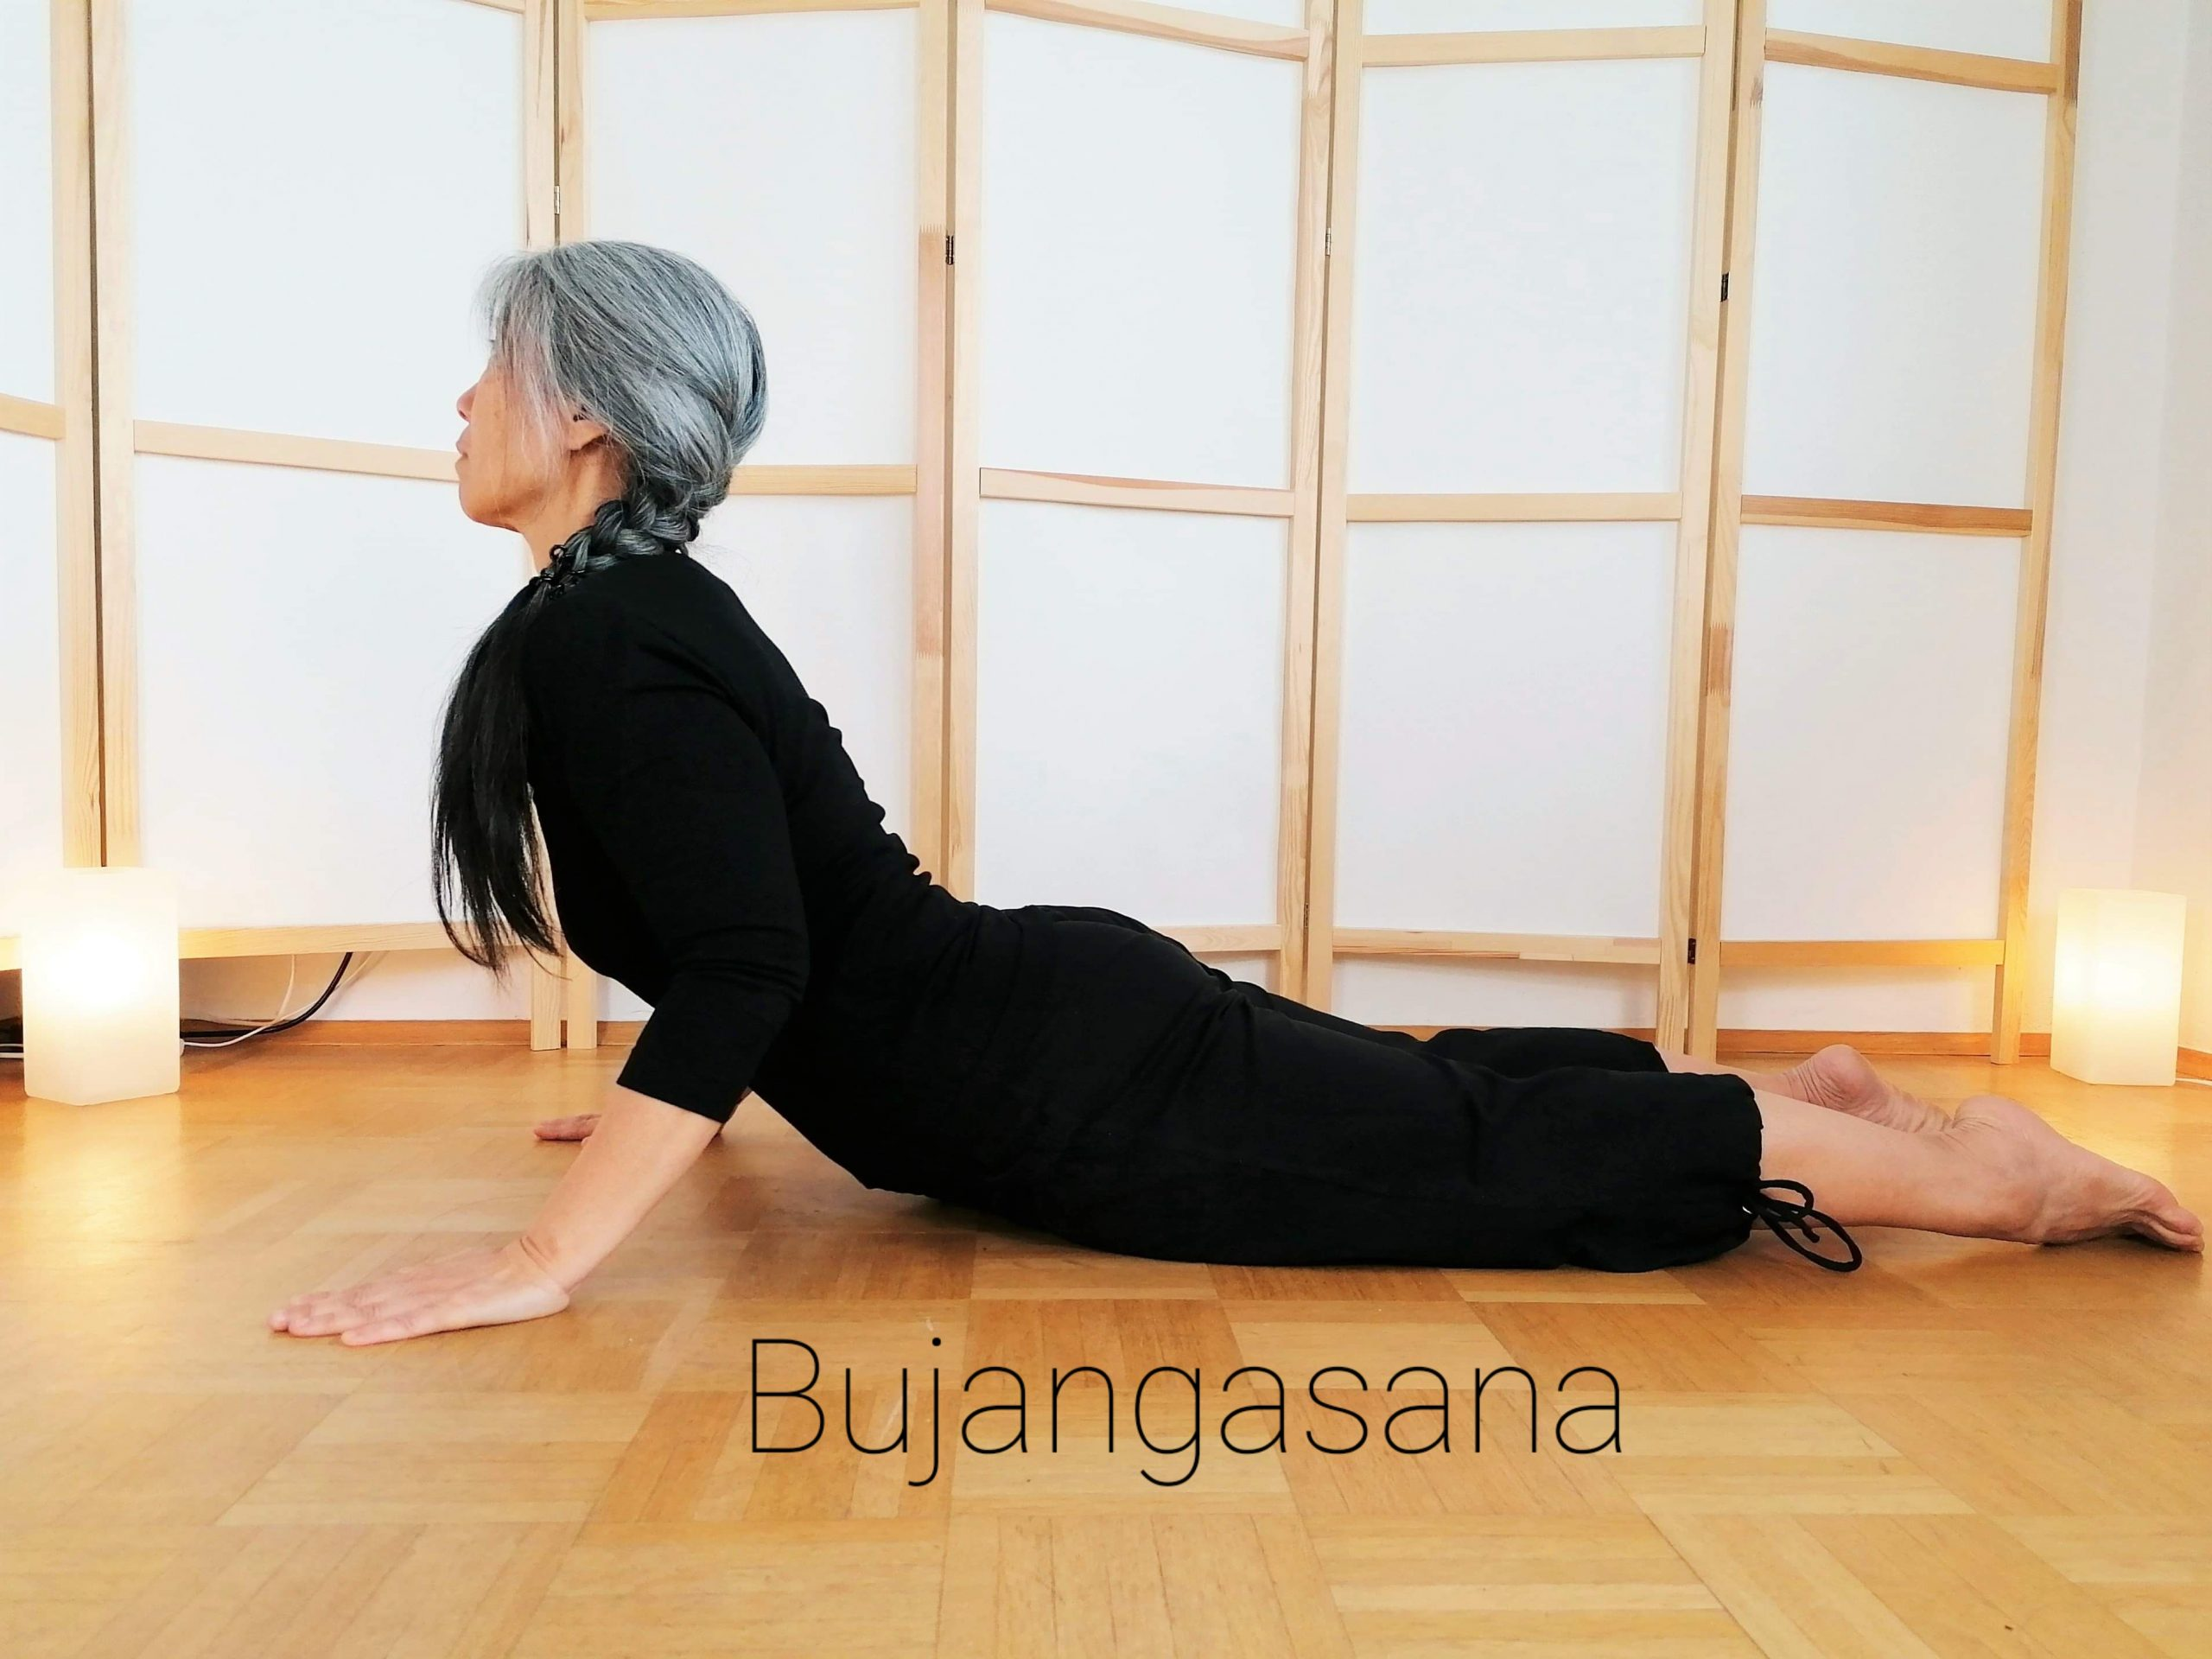 Spinal flexibility. Also ideal or piriformis/Sciatica nerve damage as it stretches and strengthens the nerves affected.